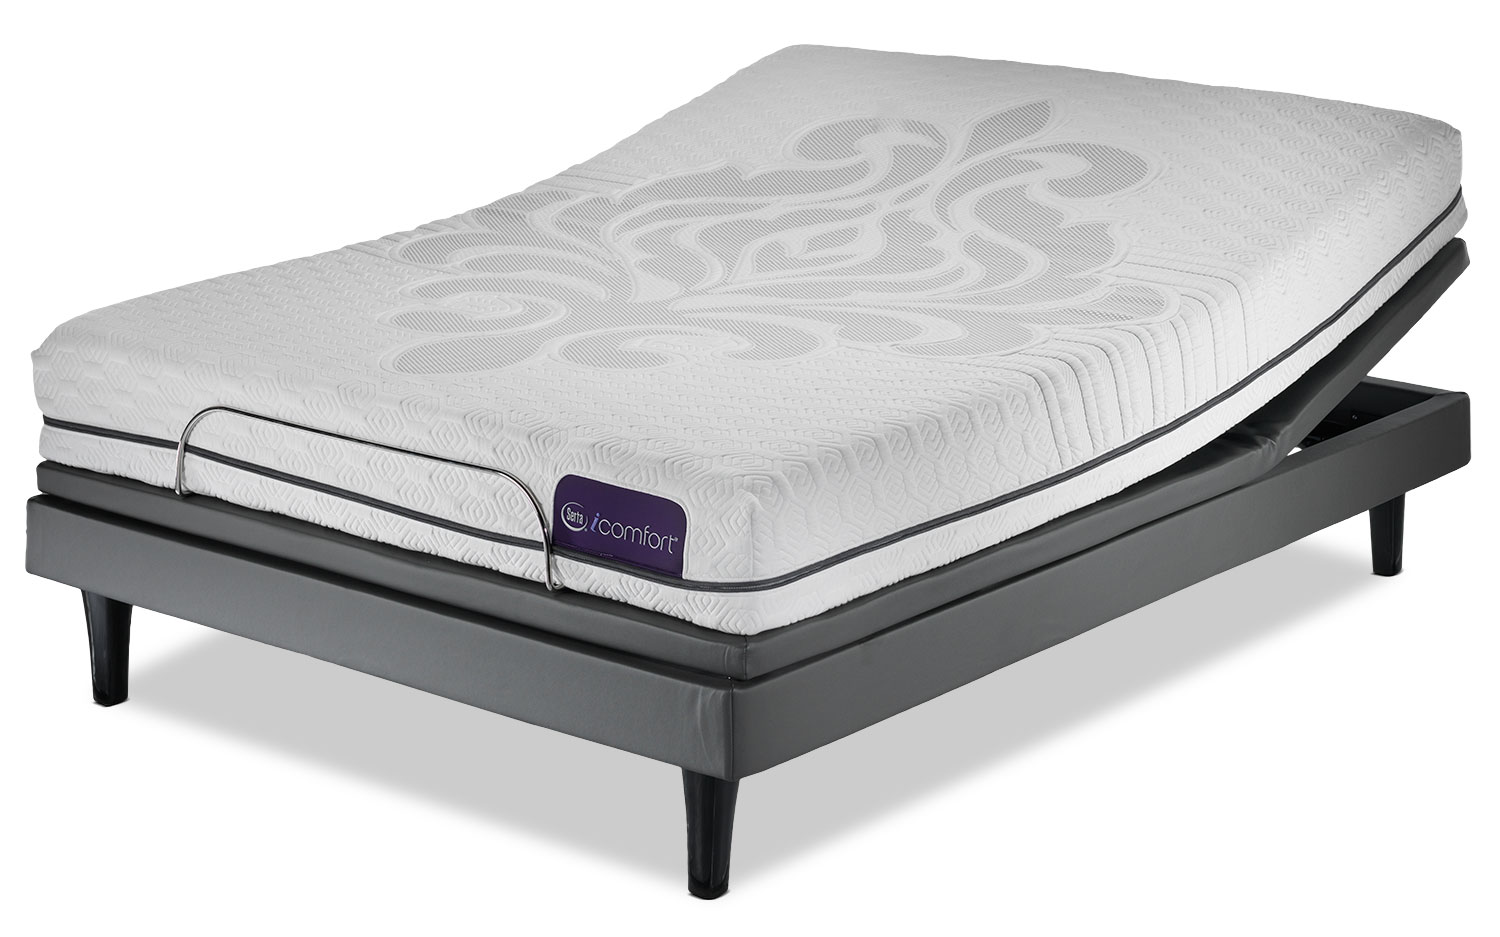 Serta iComfort Eco Levity Firm Twin XL Mattress and Motion Perfect III Complete Adjustable Base